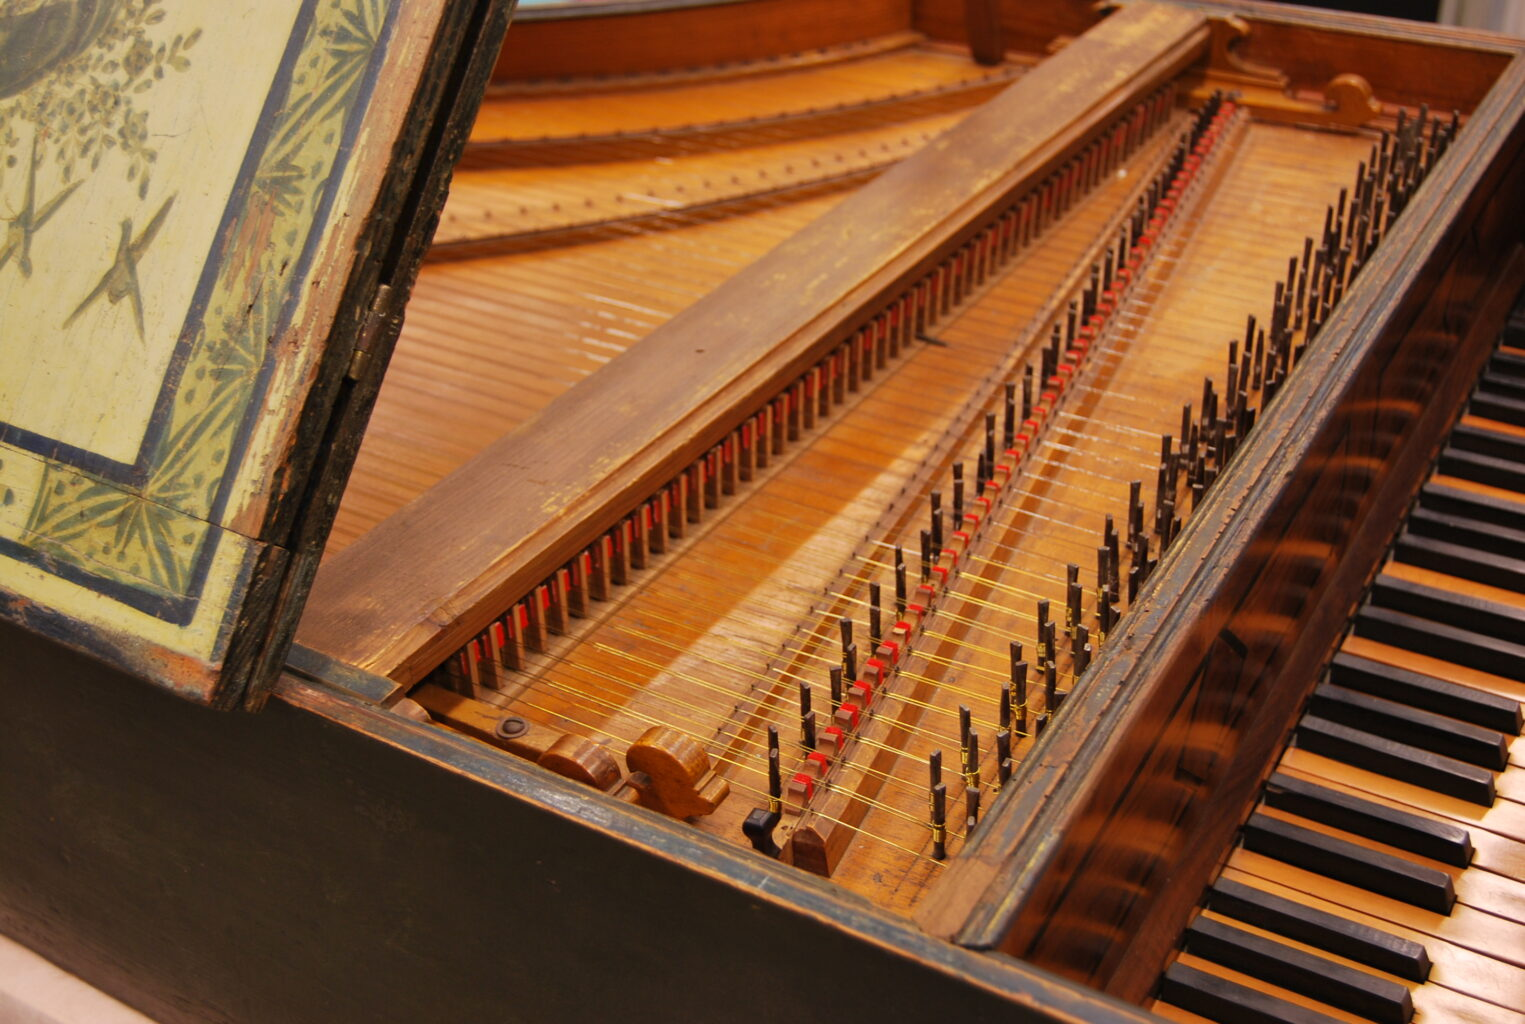 Detail image of harpsichord keys and strings